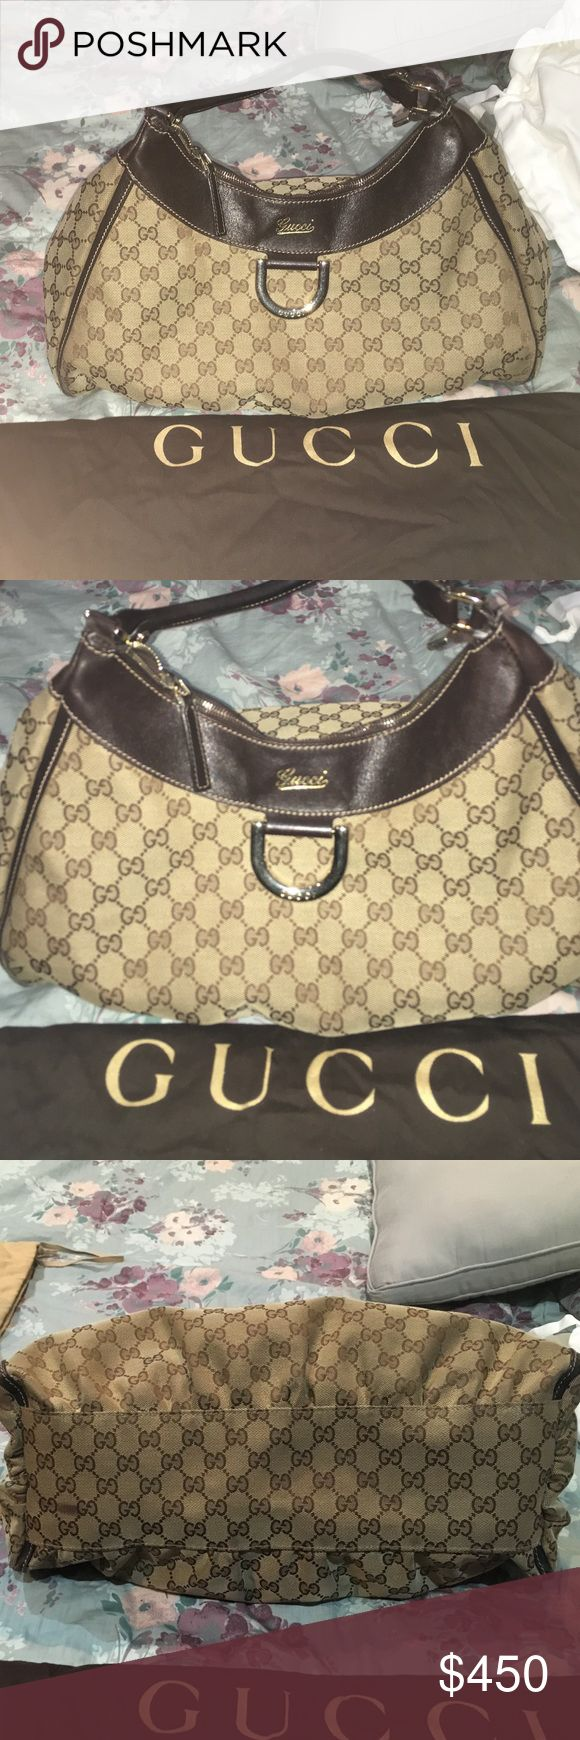 Lightly used Gucci bag! Has no stains, no scuffs. Only wore 2 times. Price is negotiable Gucci Bags Shoulder Bags